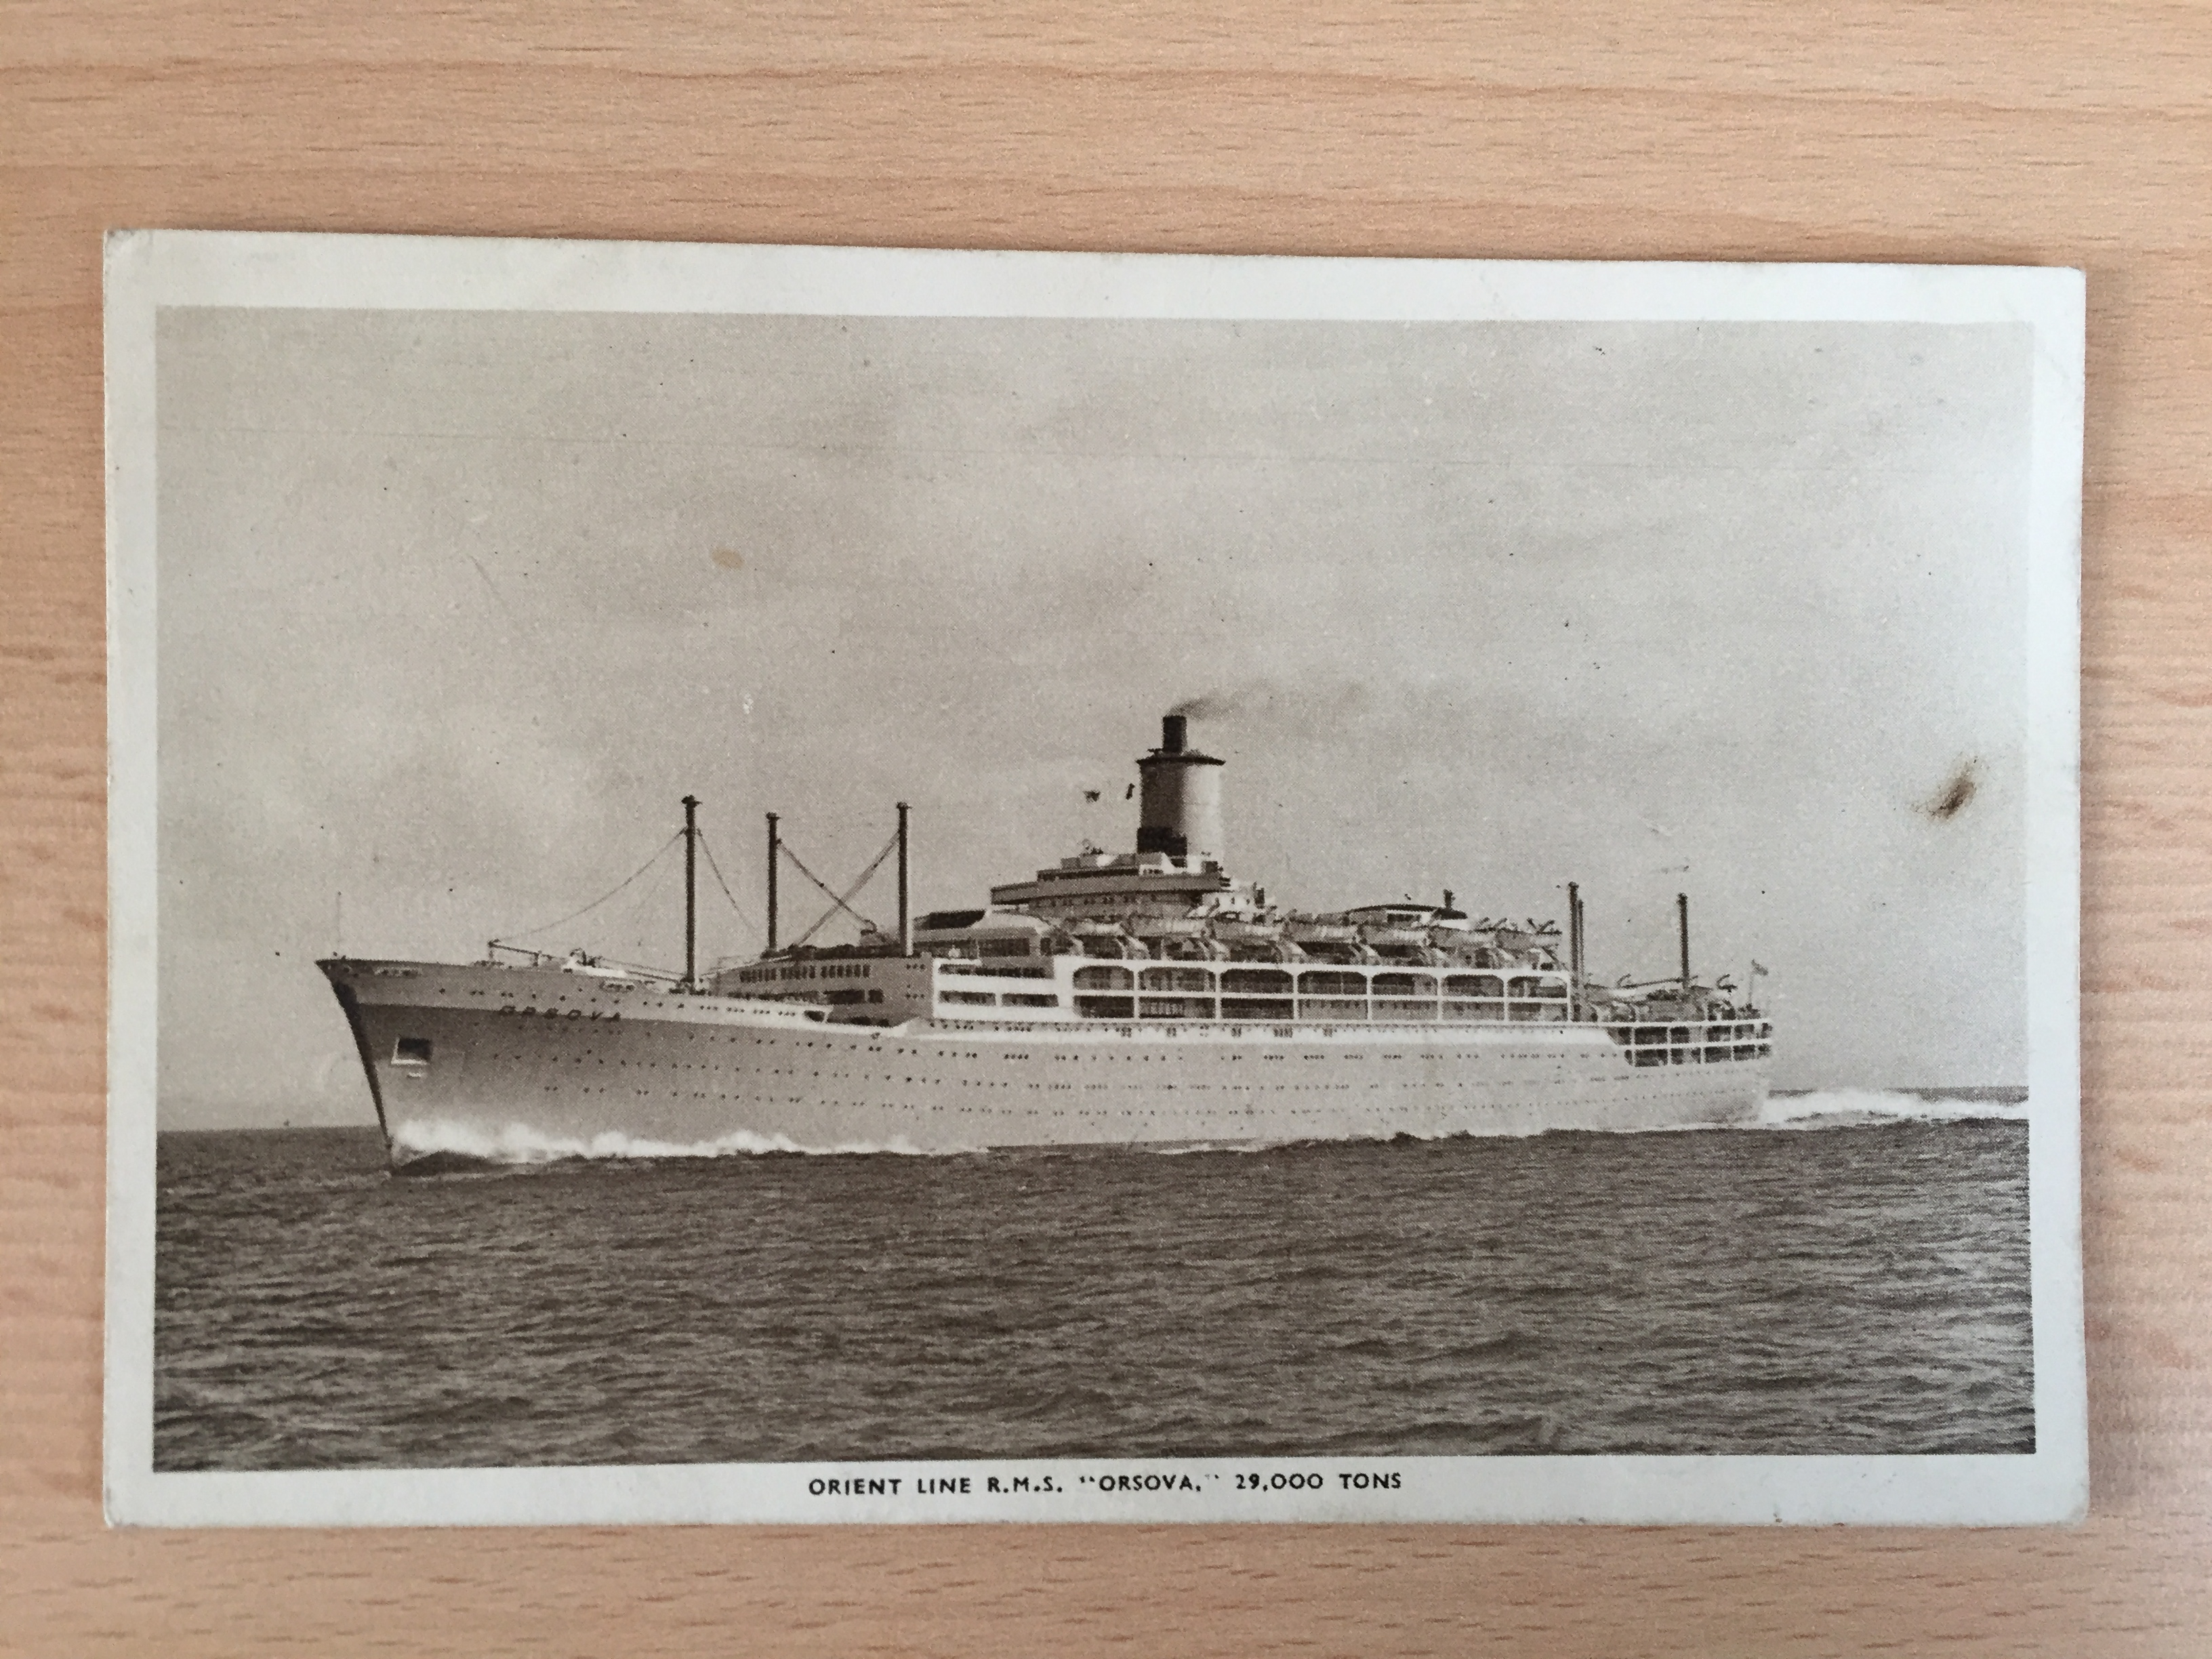 B/W USED POSTCARD FROM THE ORIENT LINE VESSEL THE RMS ORSOVA